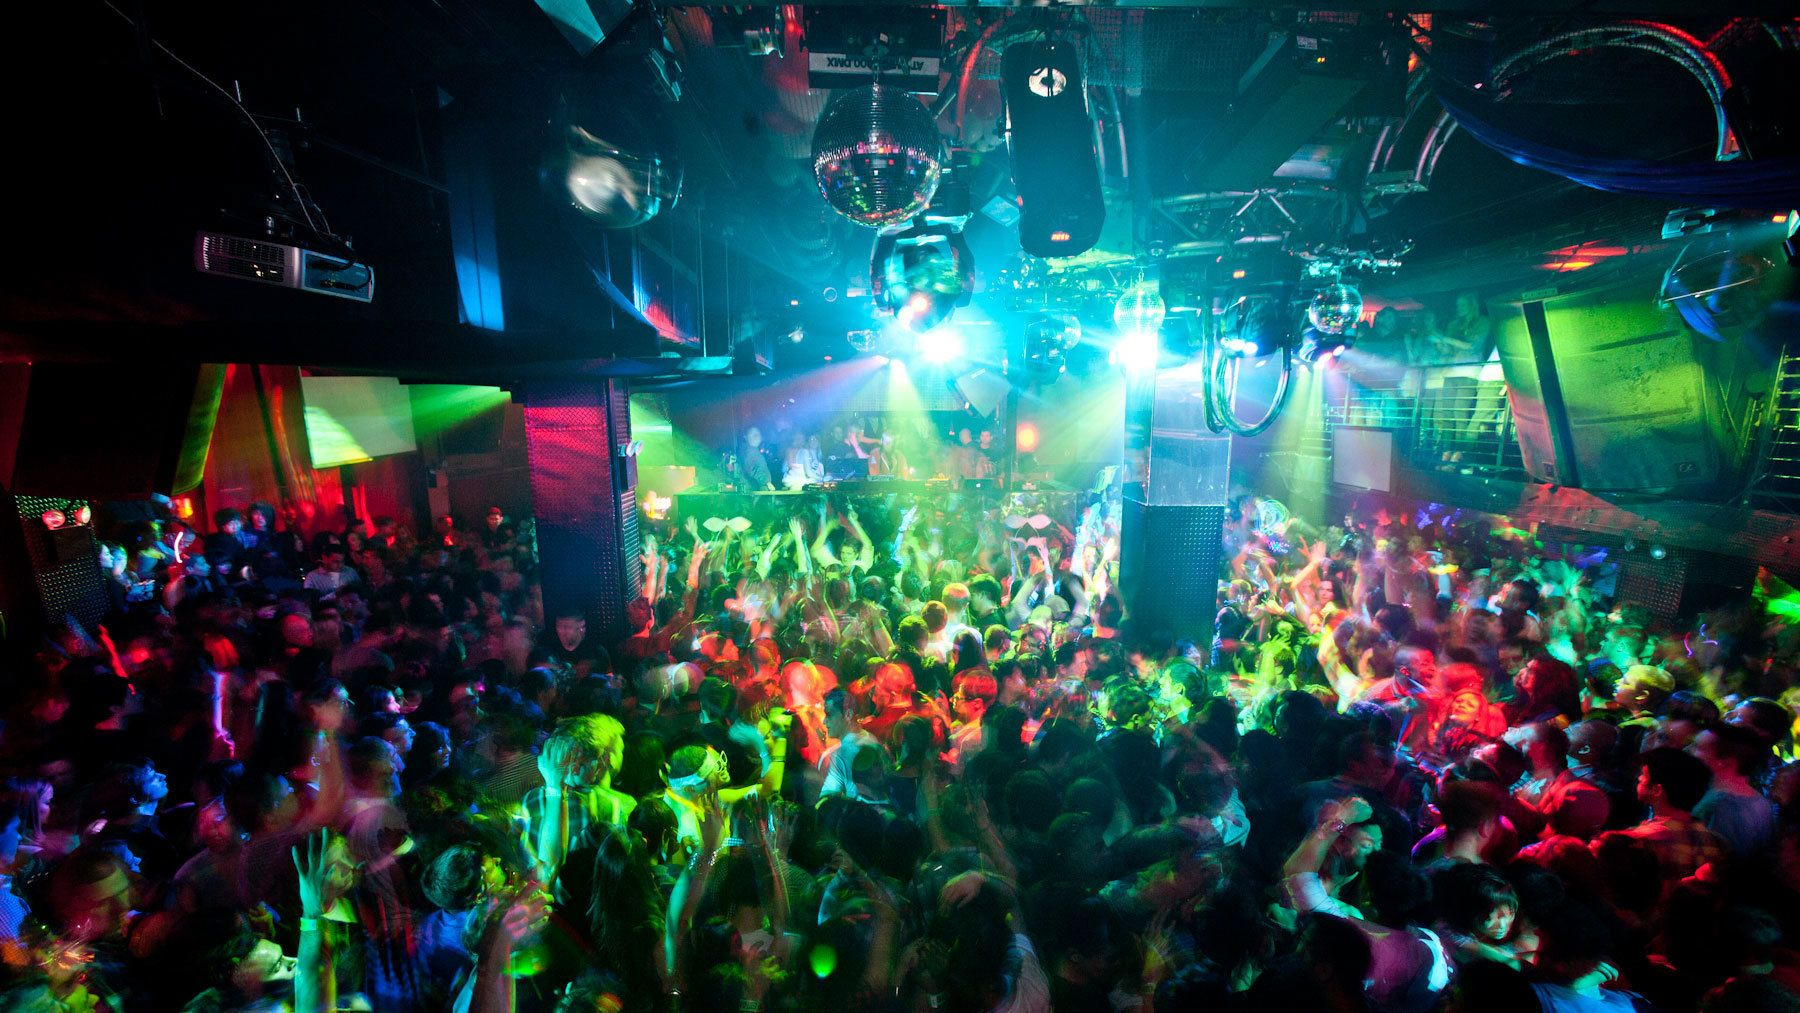 Nightclub scene in New York